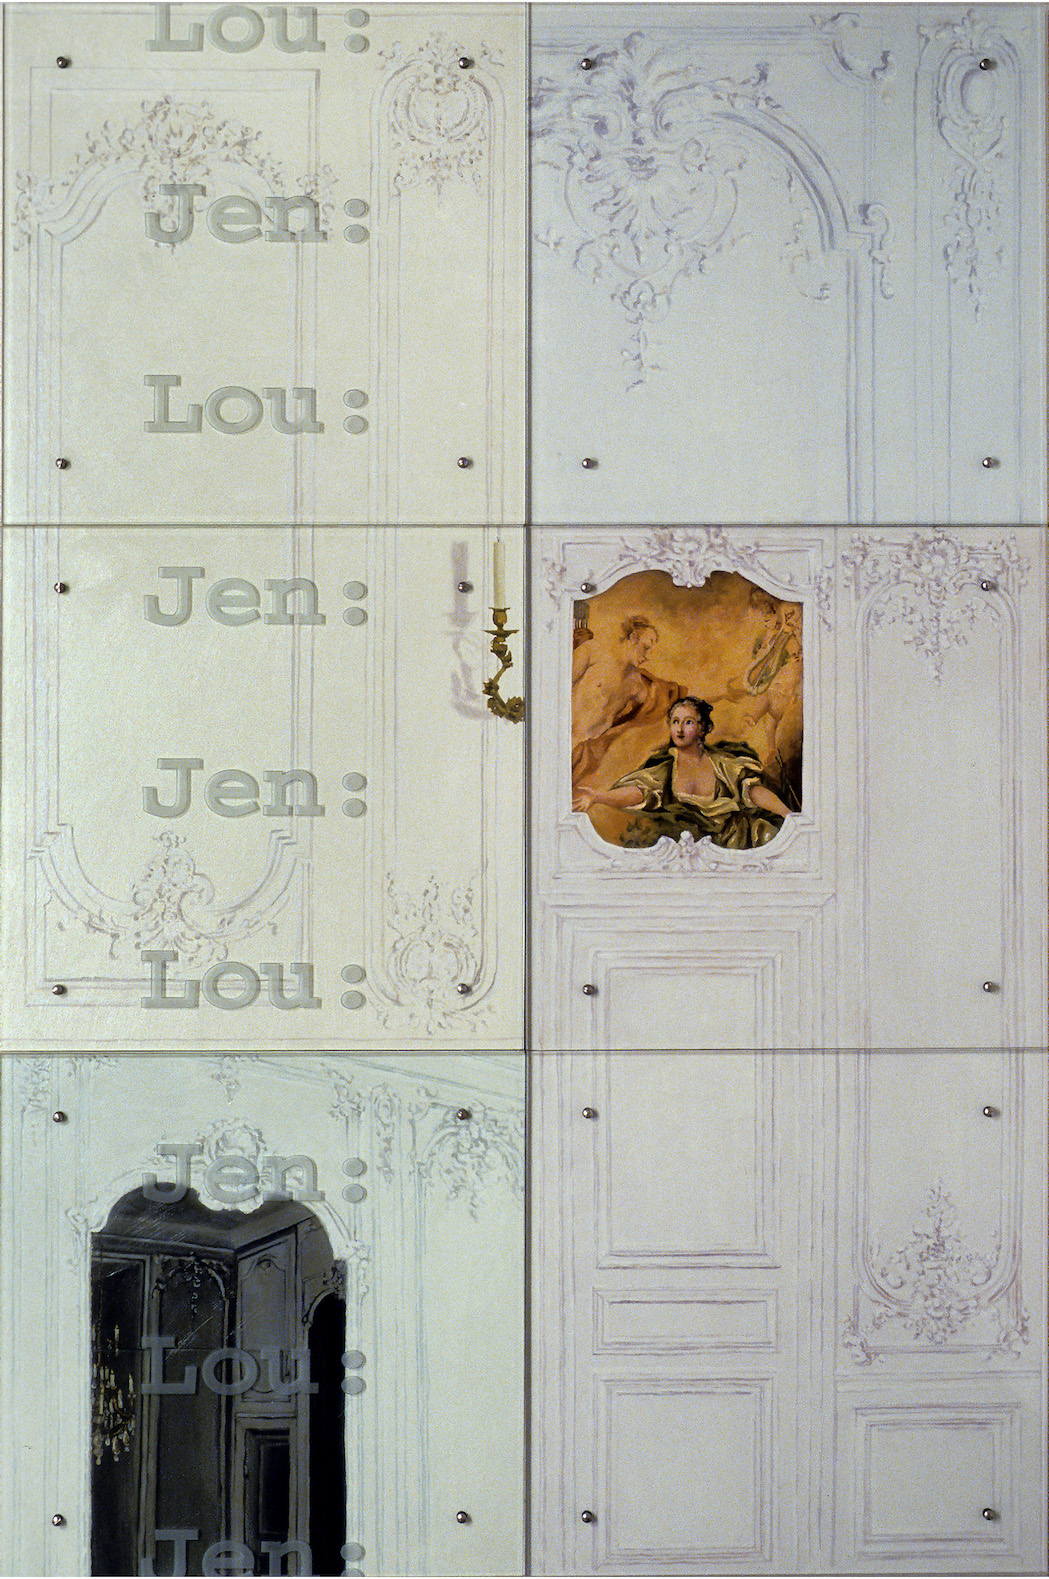 "SCENARIO, (""screenplay"" in French) 60"" x 90"", six panels each 30"" x 30"", oil on wood, sandblasted glass, bolts, Lou=Louis XV, Jen=Jeanette Poisson (Mme de Pompadour), boiseries taken from Louis' chambers in Versailles, image above the door by Francois Boucher, with Mme de Pompadour standing in for a mythological character, and the image in the mirror is of a secret door that led up to Mme de P's apartments from his—if only the walls could talk!"